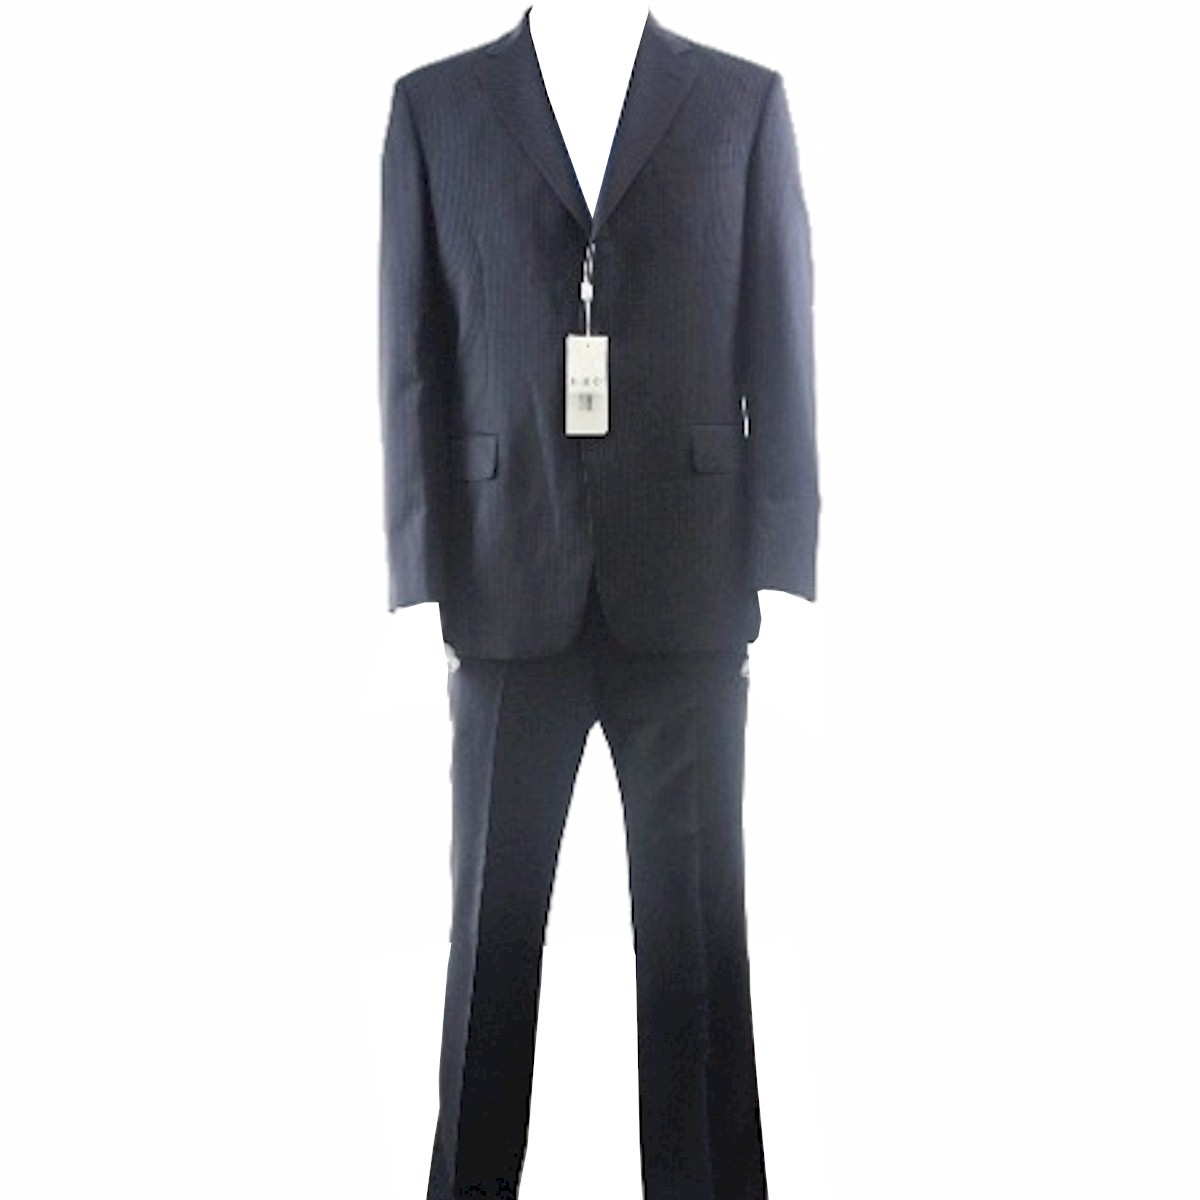 Image of Gianfranco Ferrre Suit Men's 3 buttons Black Wool 2 Back Vent - Black - US 40 EU 50